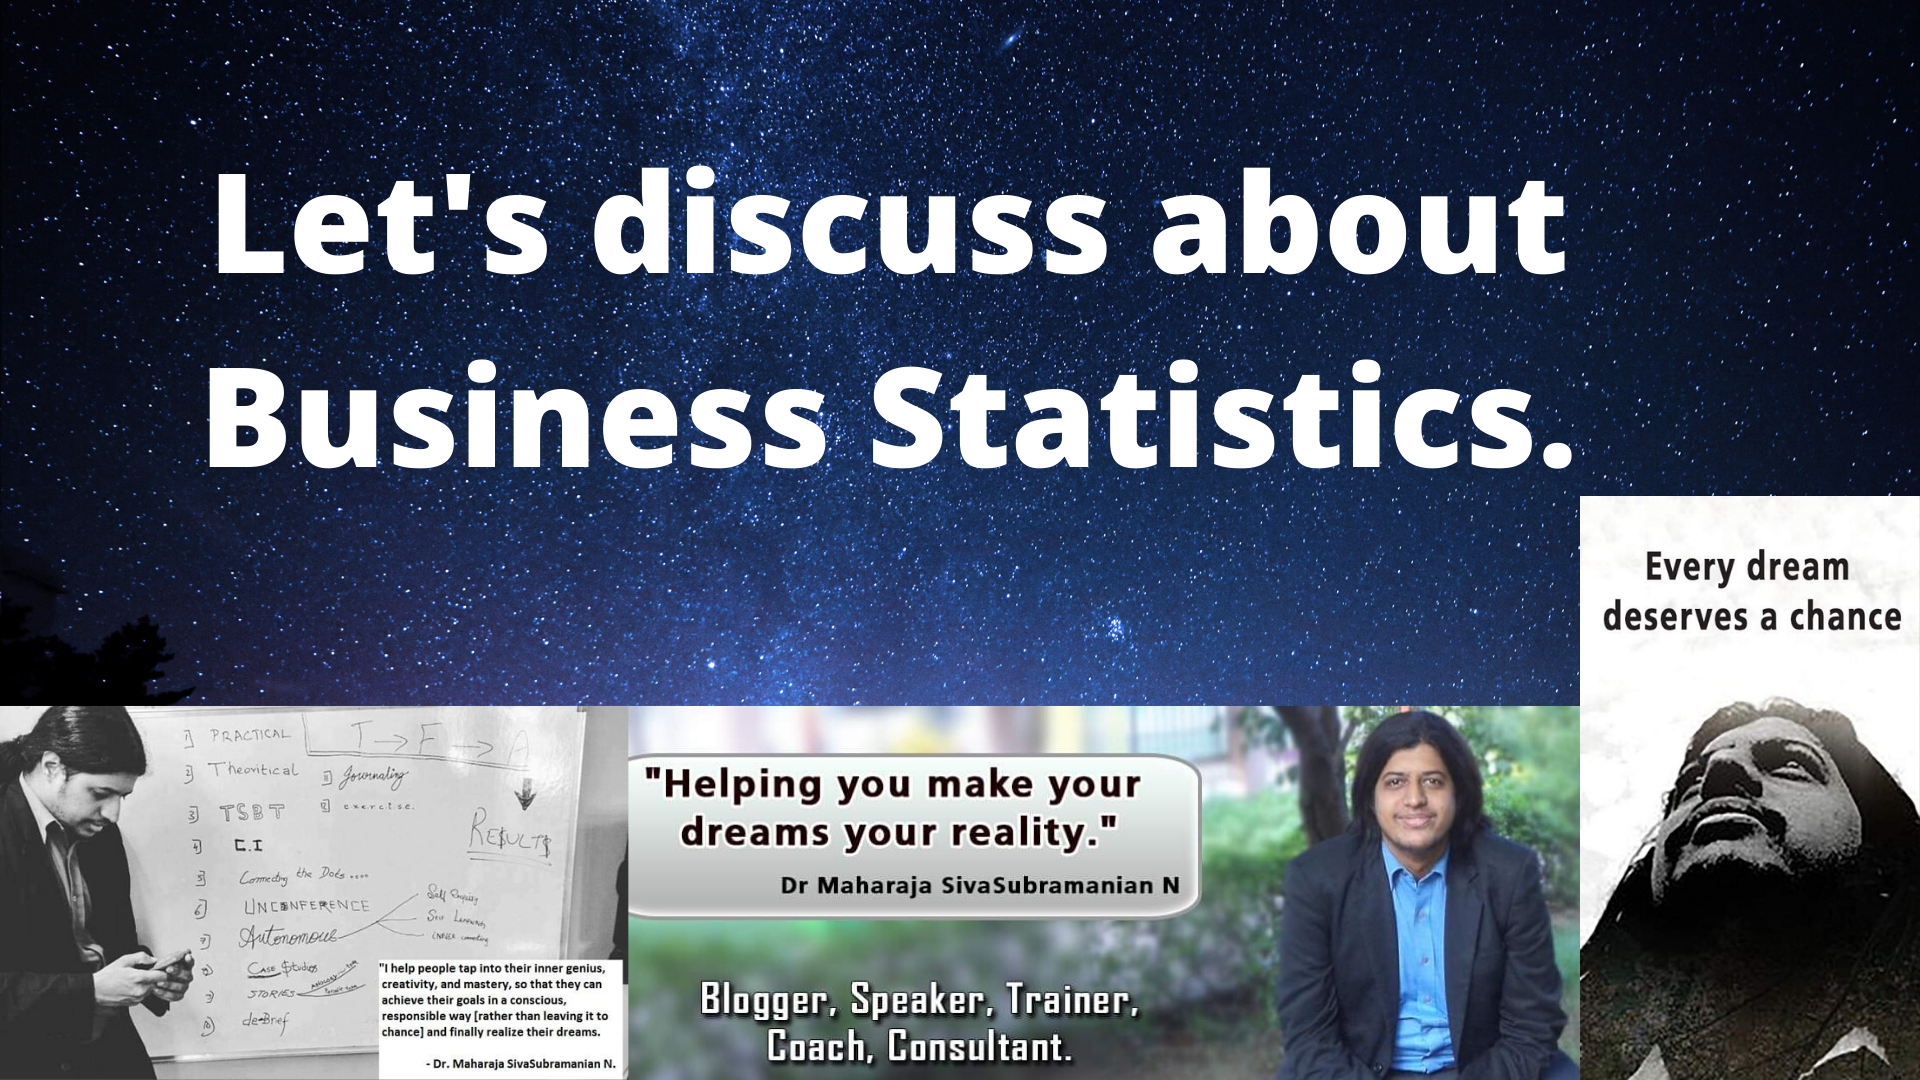 Let's discuss about Business Statistics.